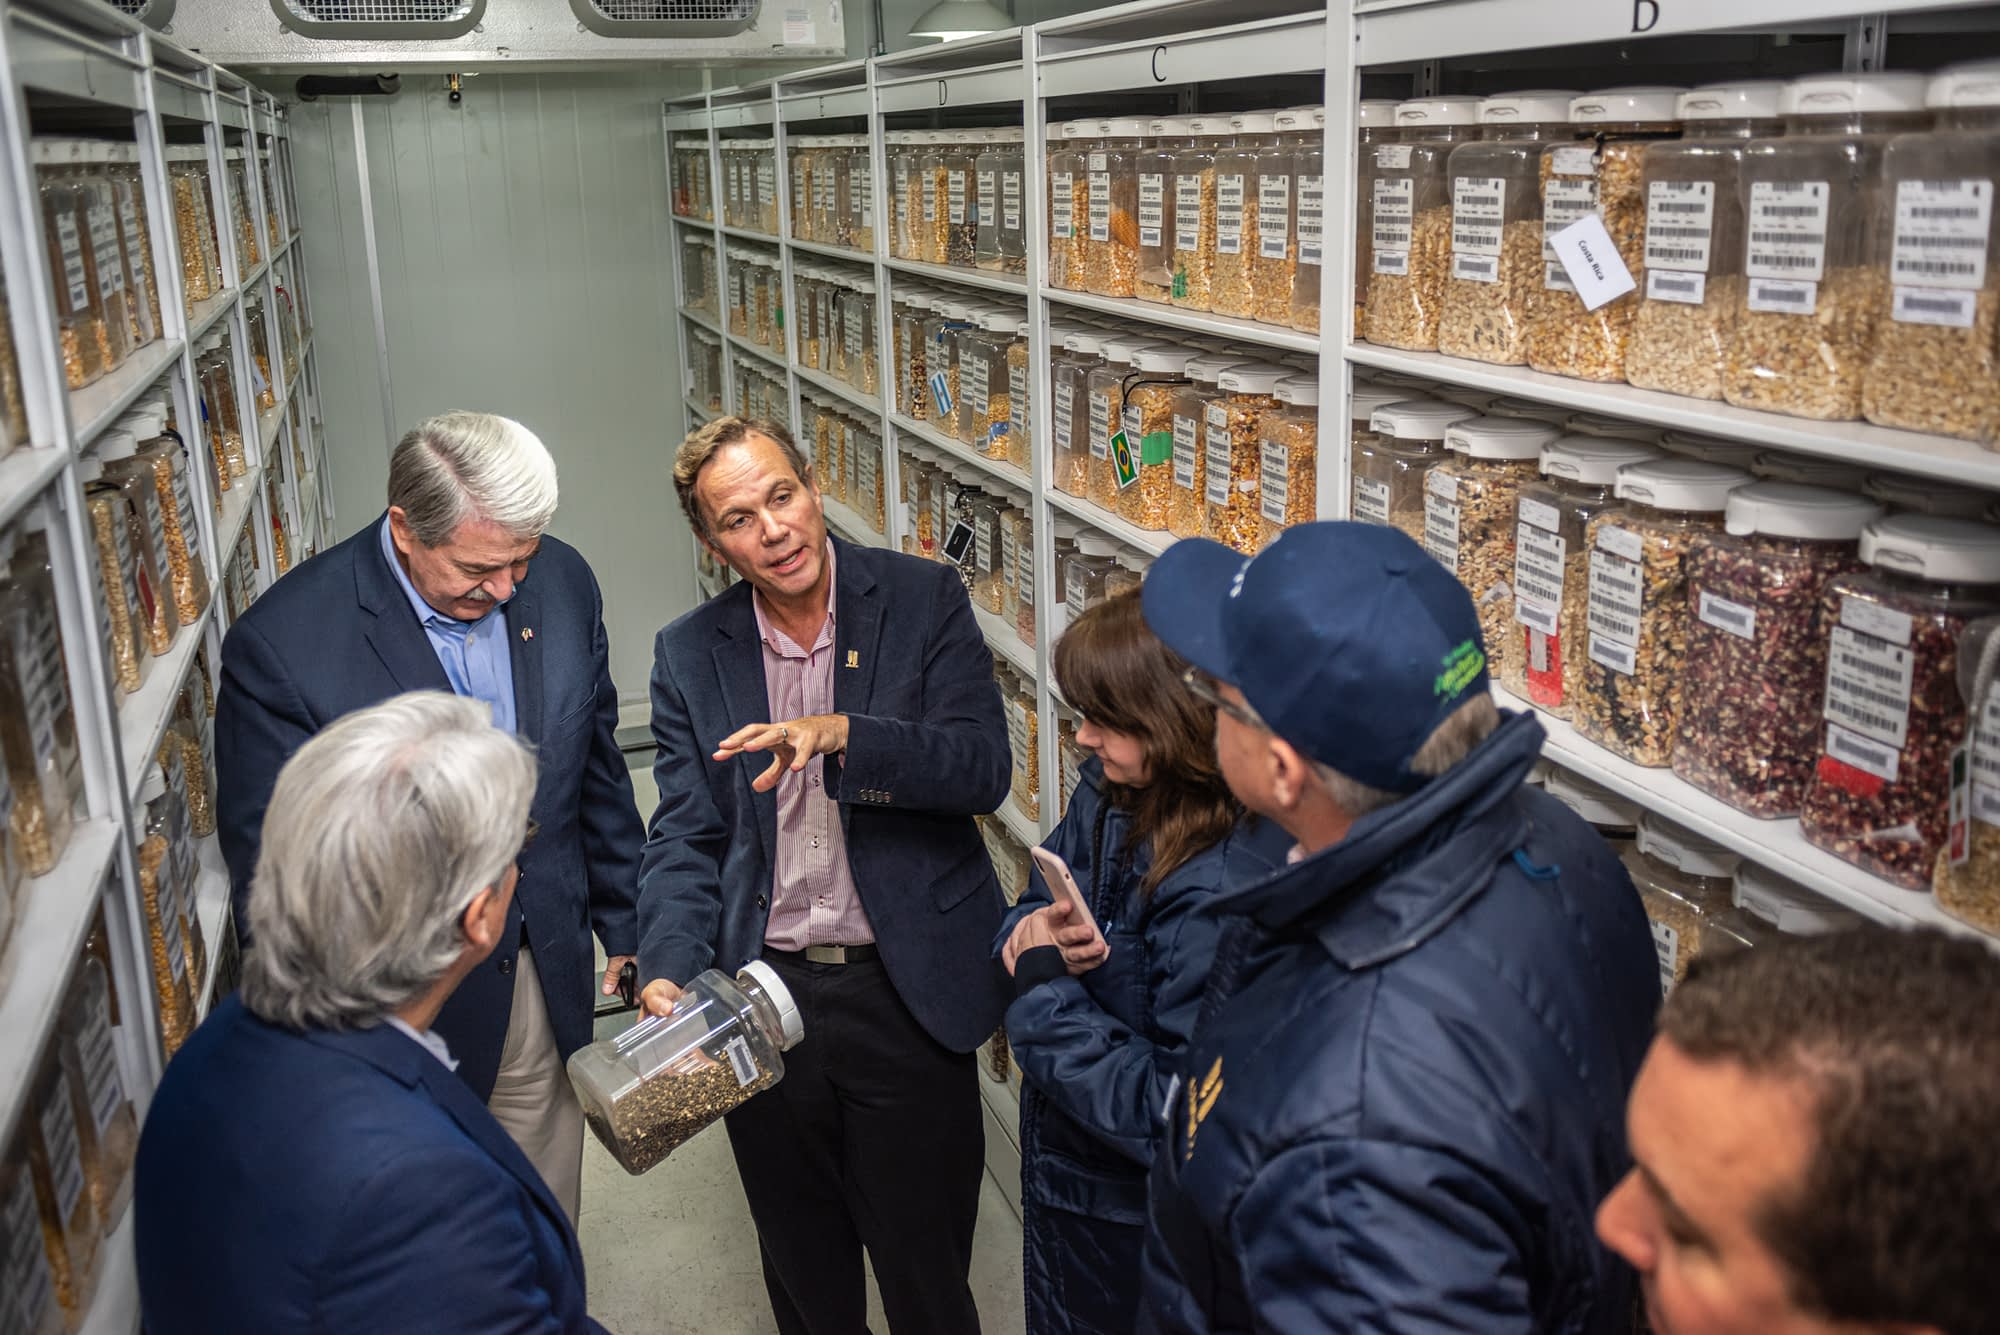 The director of the Genetic Resources program, Kevin Pixley (center), shows some of the genetic materials at CIMMYT's Germplasm Bank to US Under Secretary McKinney (top-left). (Photo: Eleusis Llanderal/CIMMYT)